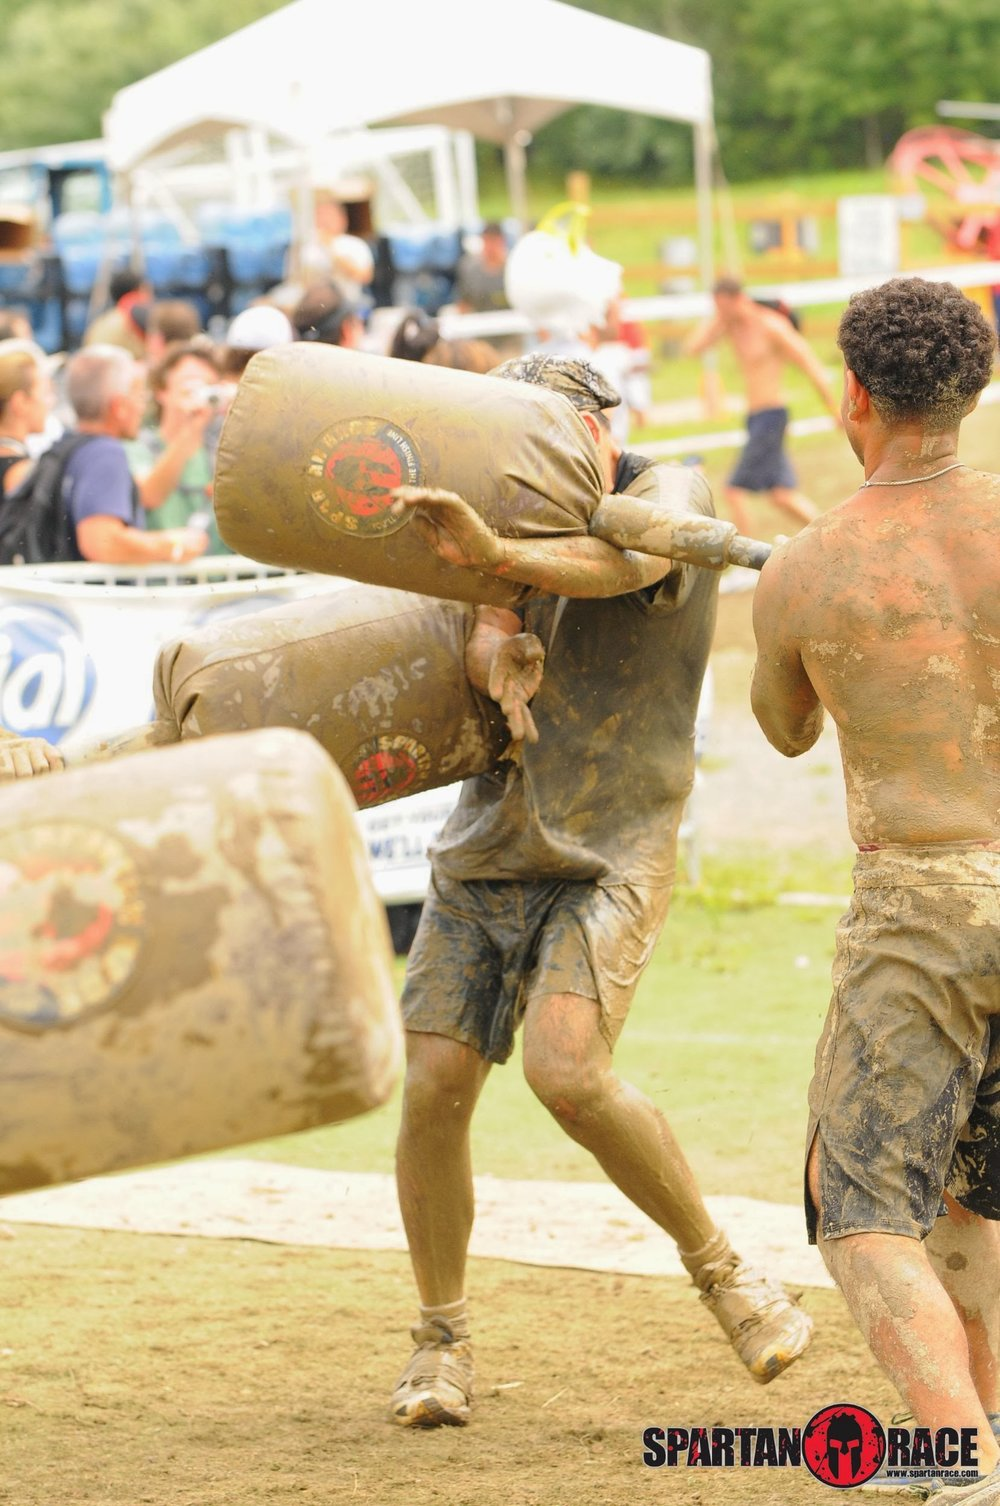 spartan race embrace the suck-.jpg